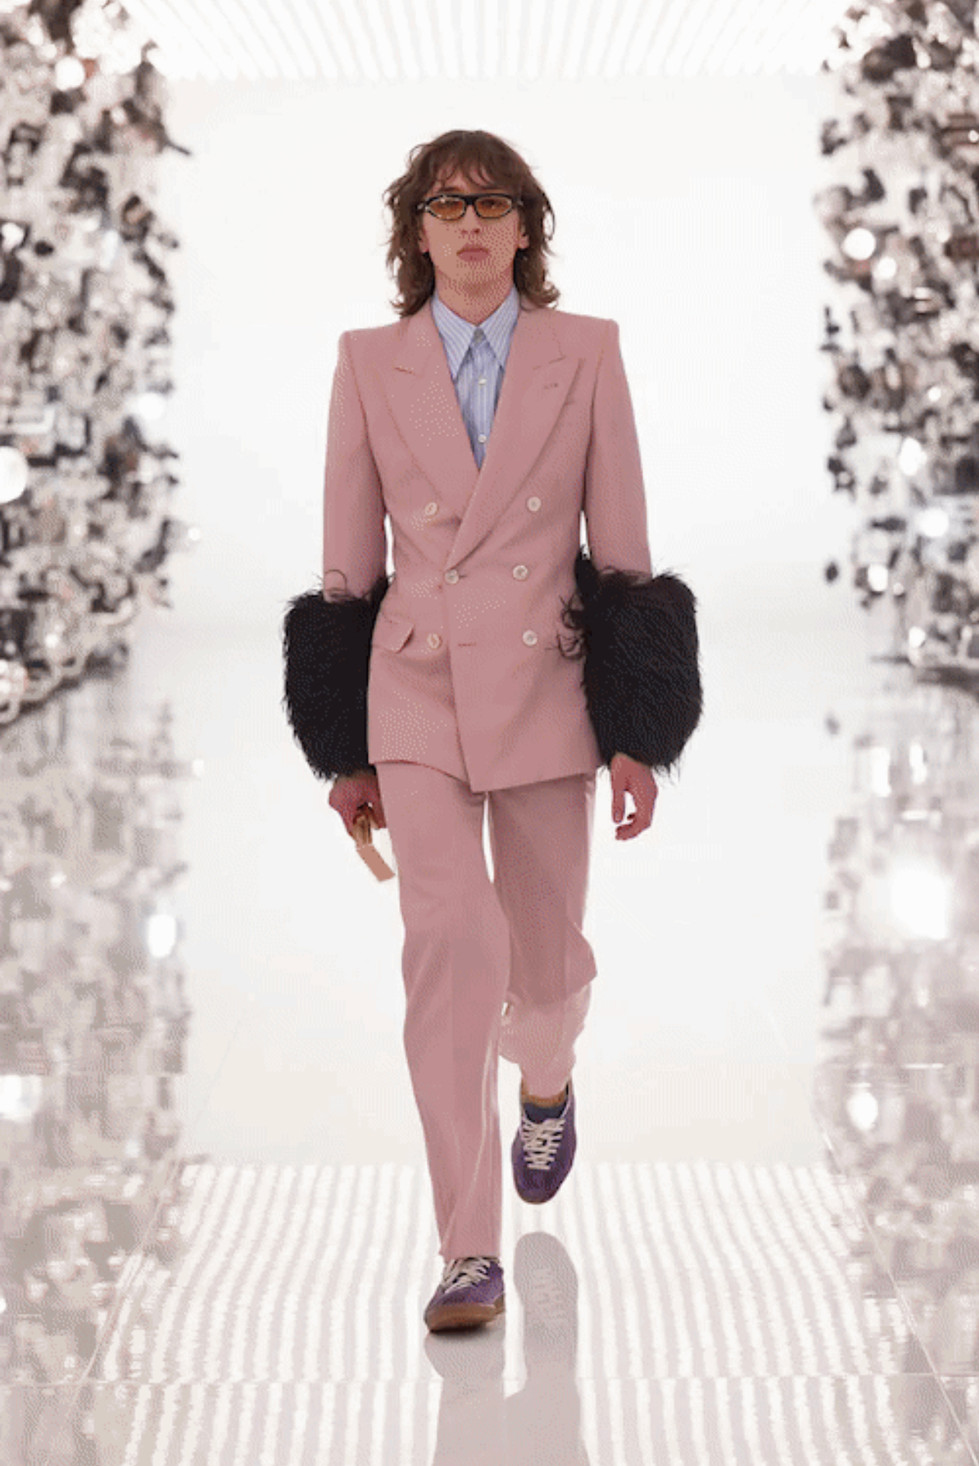 EMIL FOR GUCCI FW21